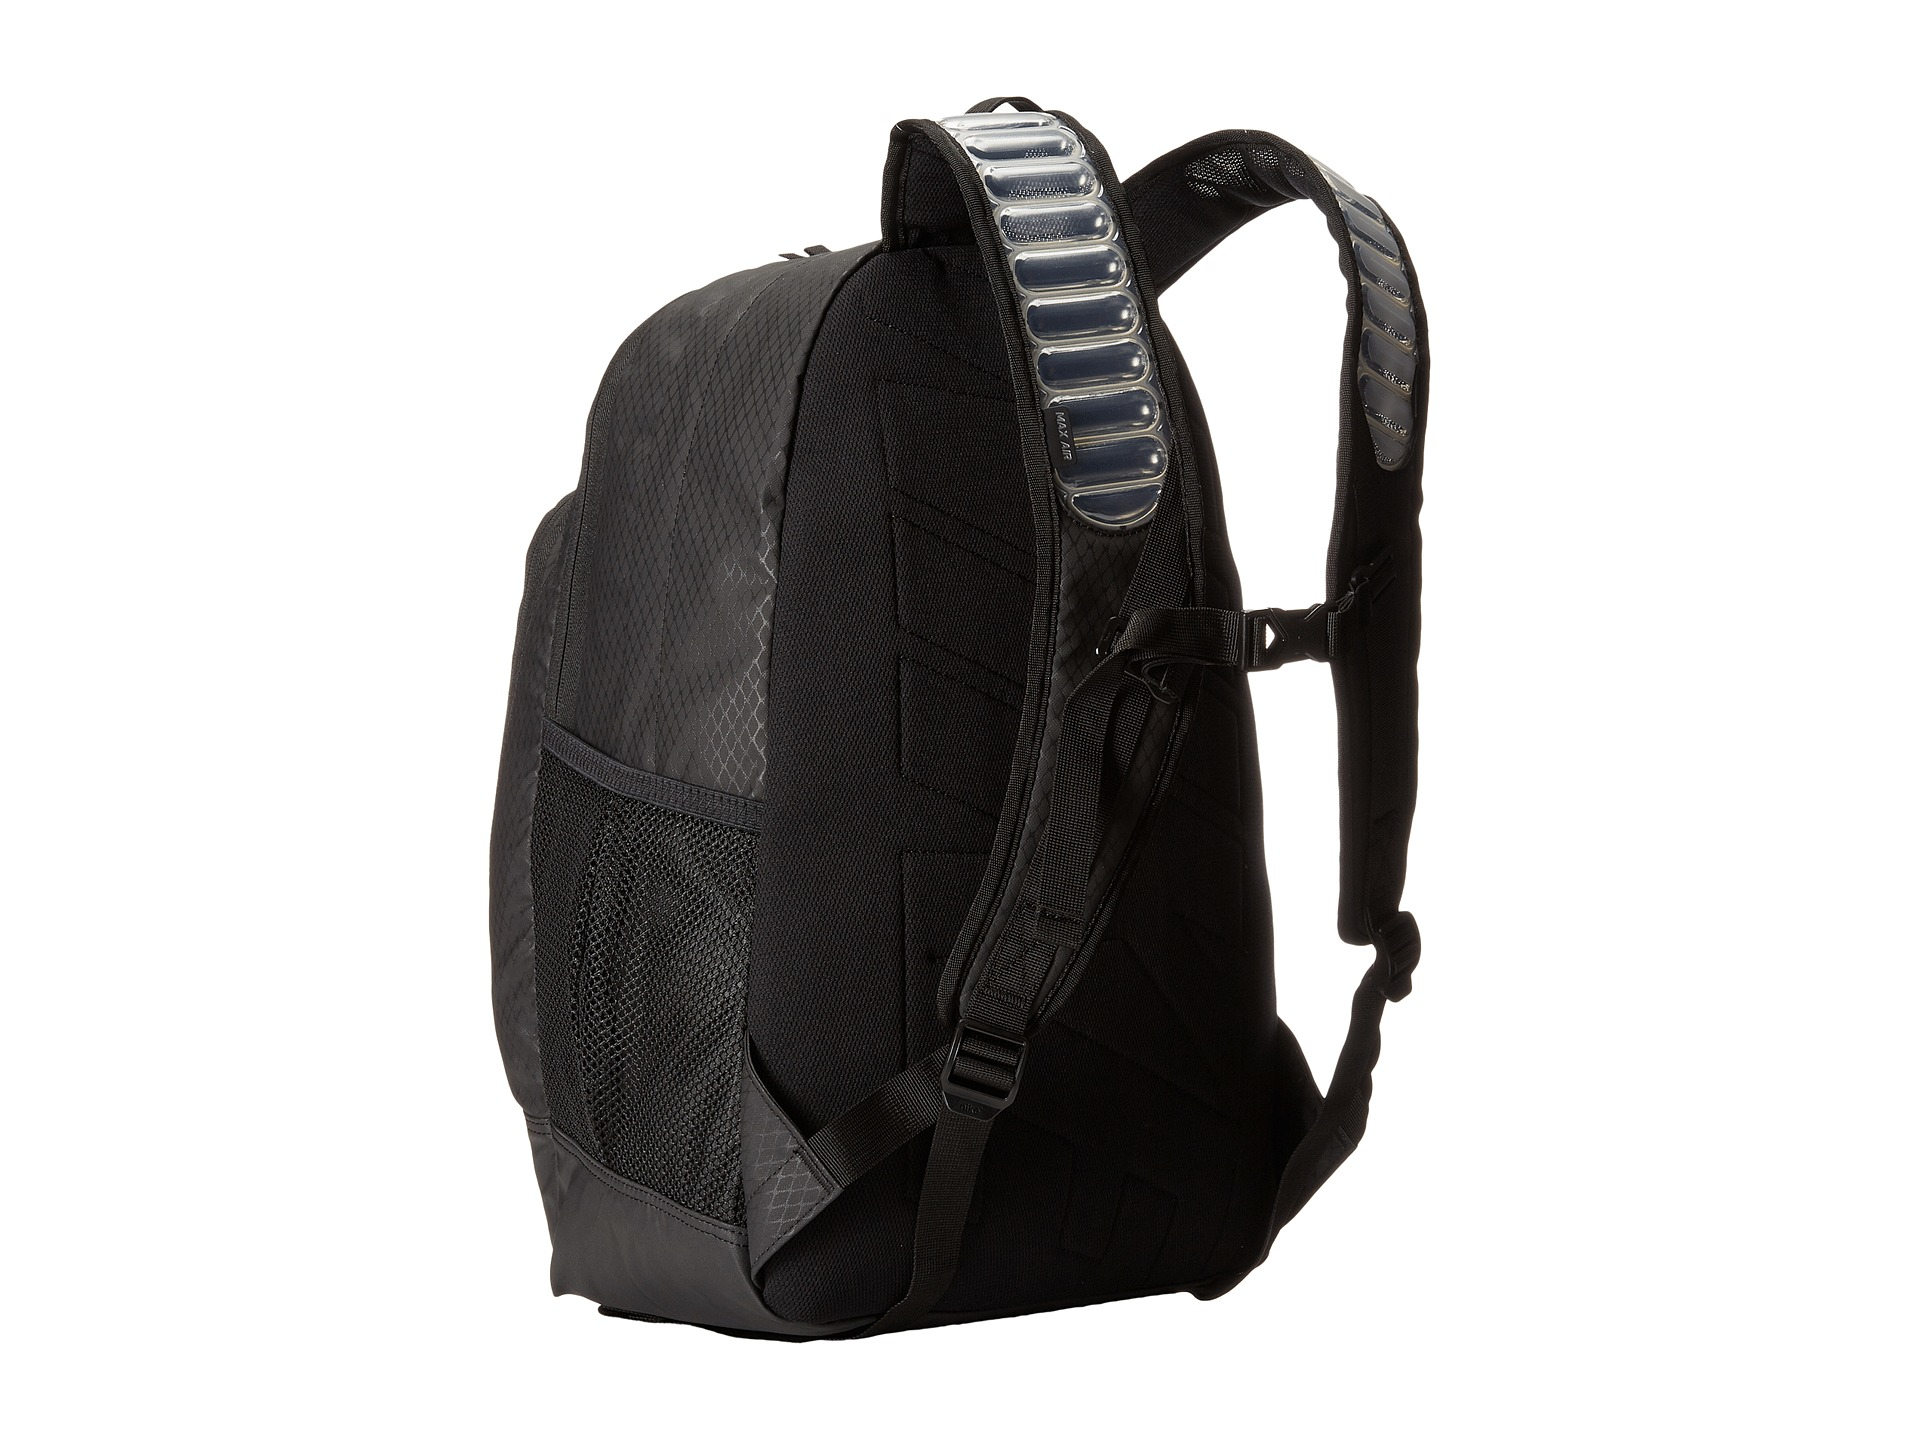 Nike Synthetic Max Air Vapor Backpack in Black - Lyst